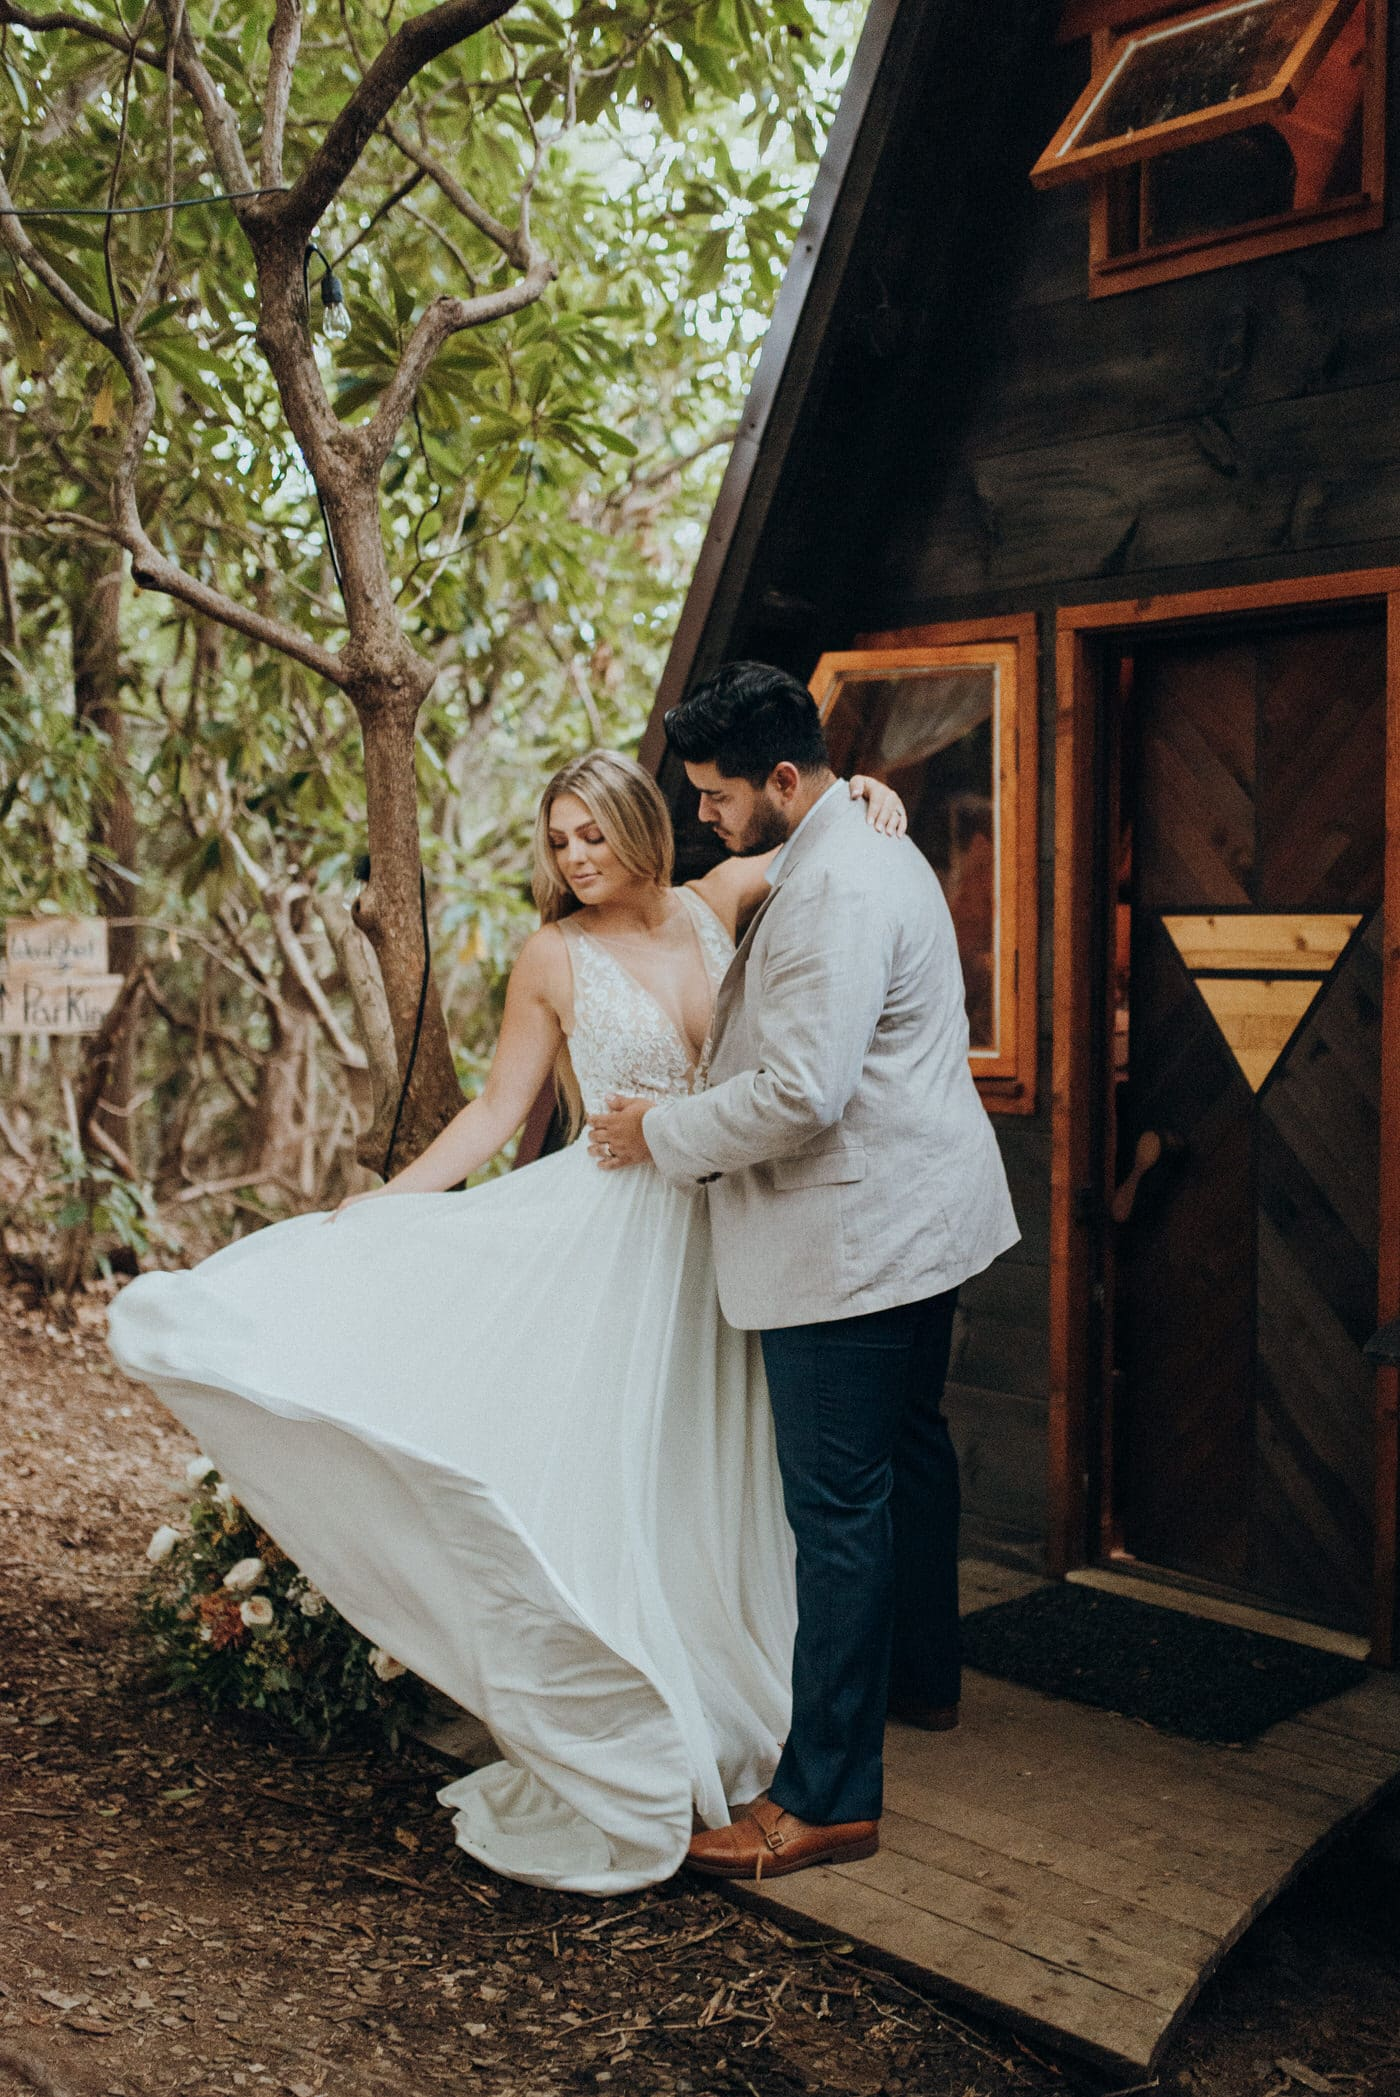 A bride and groom at a cabin in the woods